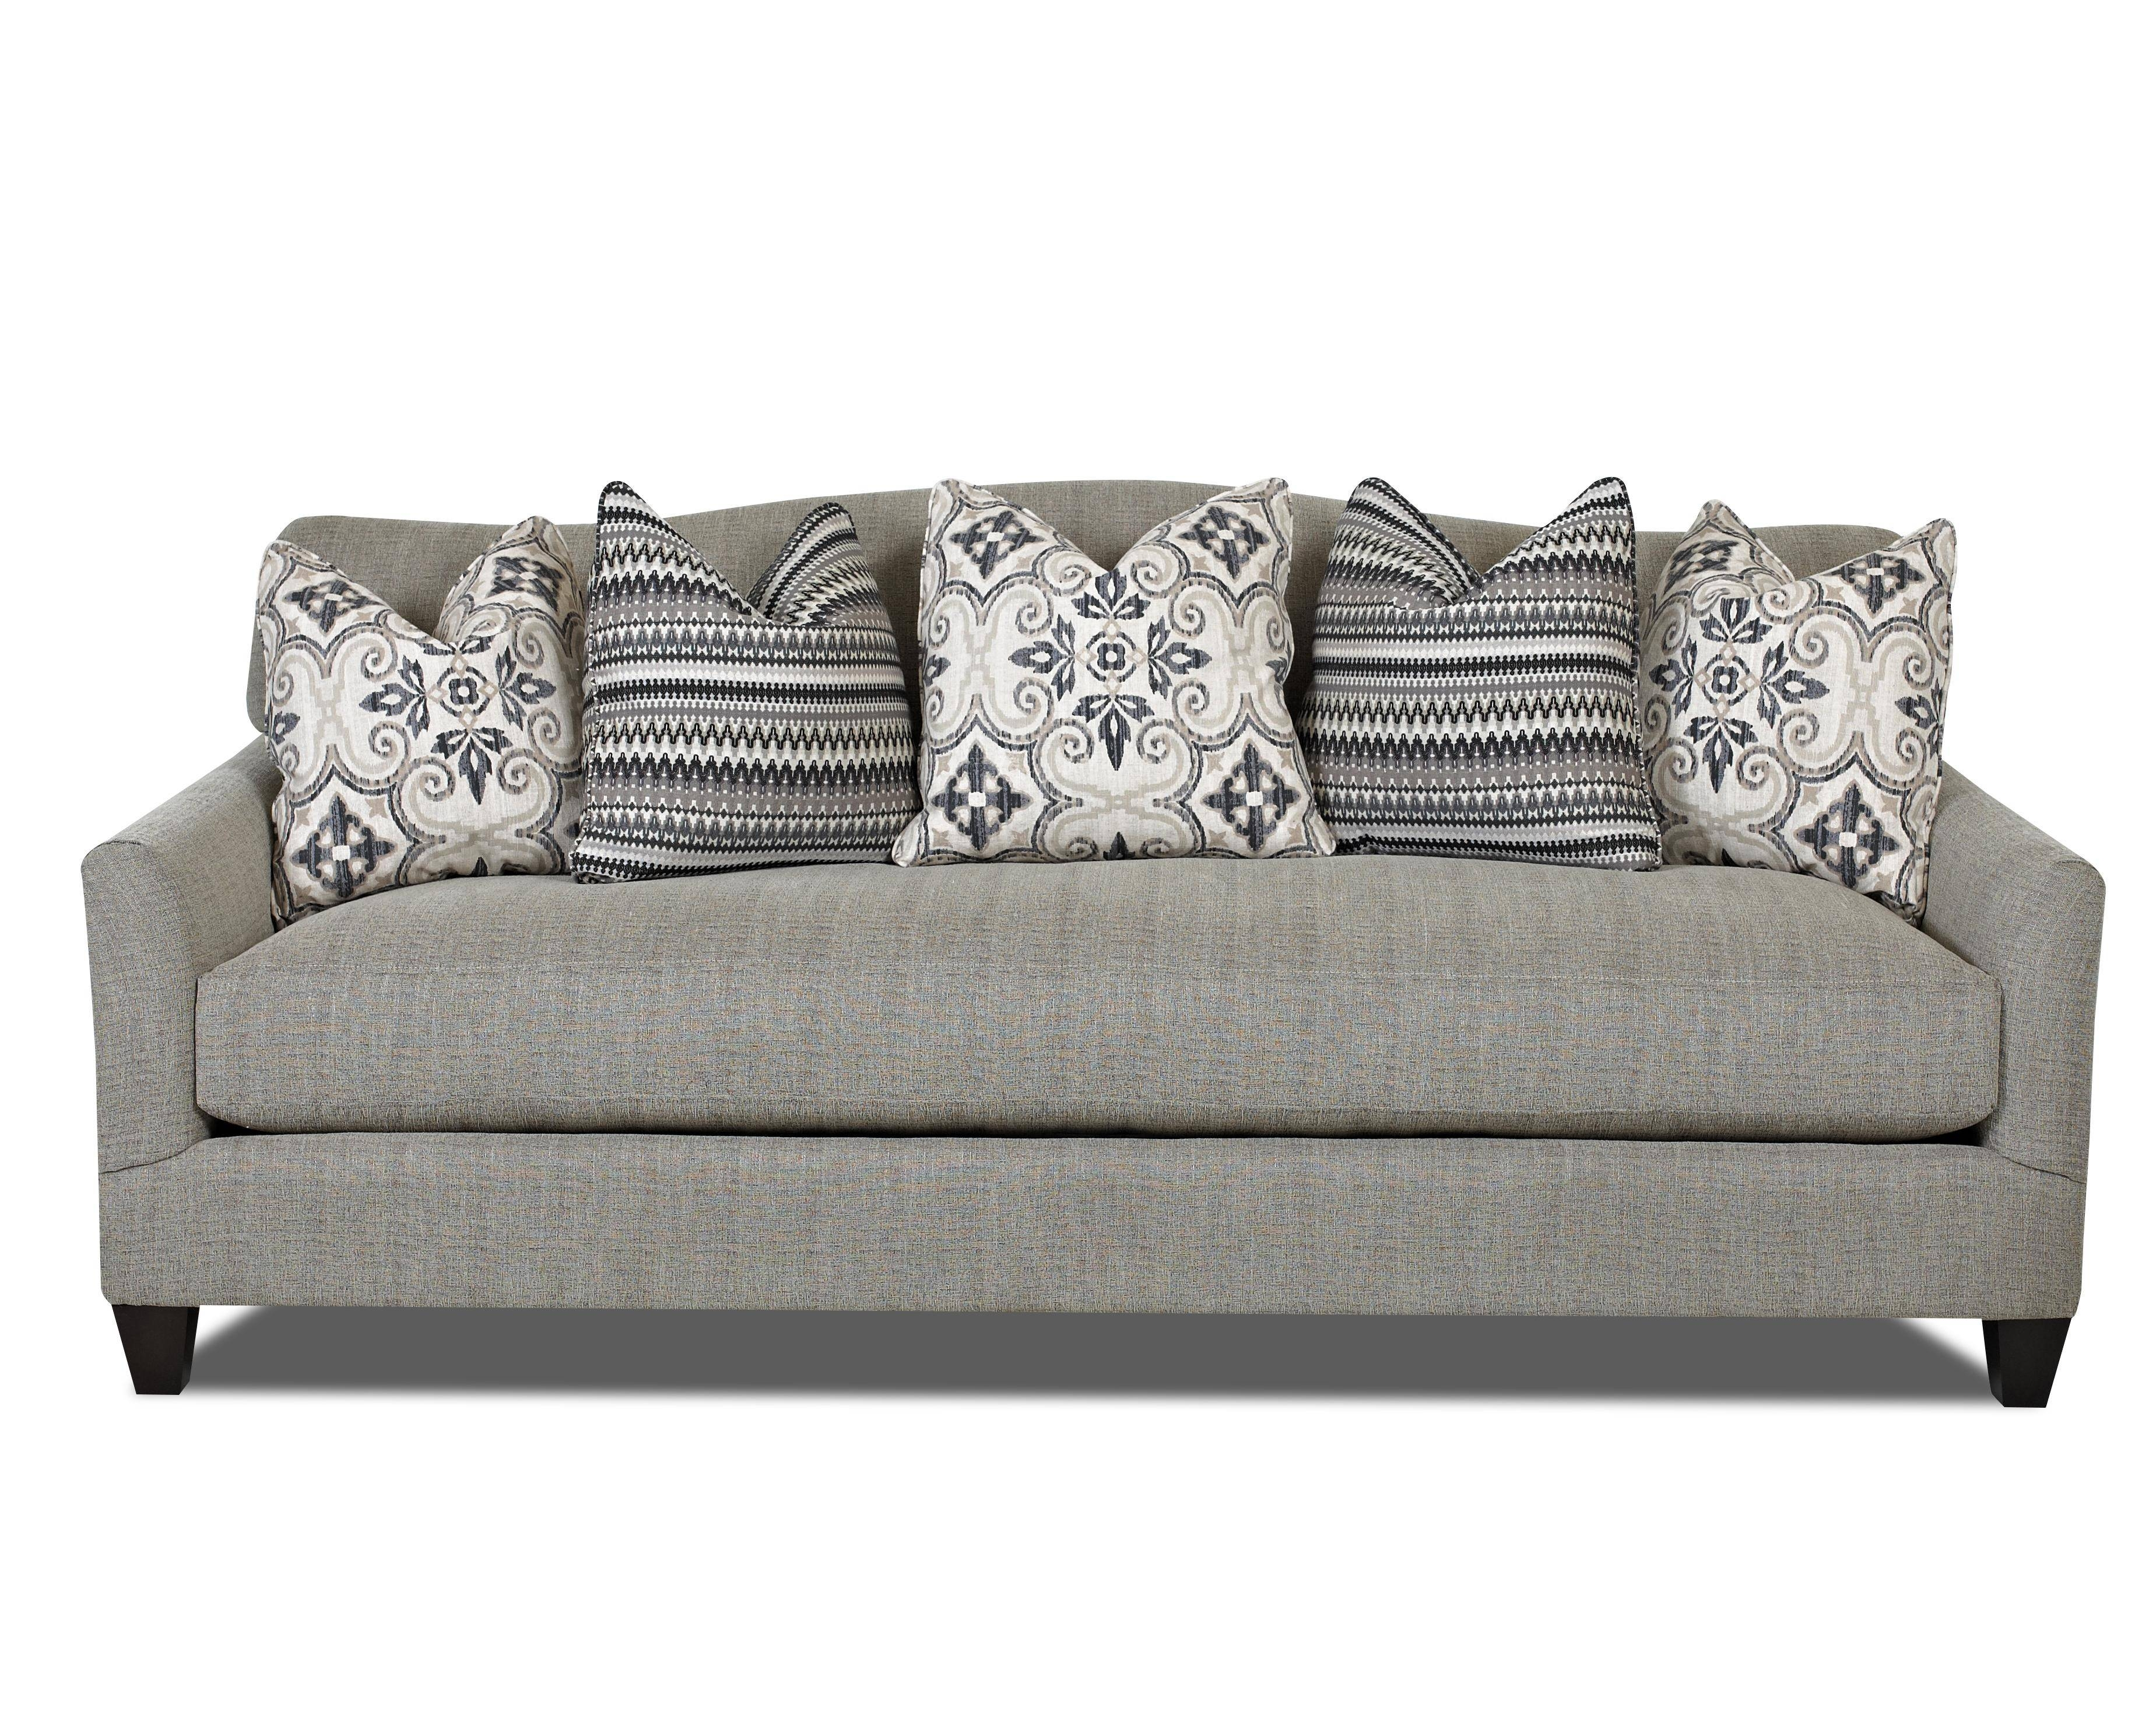 Contemporary Stationary Sofa With Bench Seat Cushion And Camel with regard to Bench Cushion Sofas (Image 2 of 15)